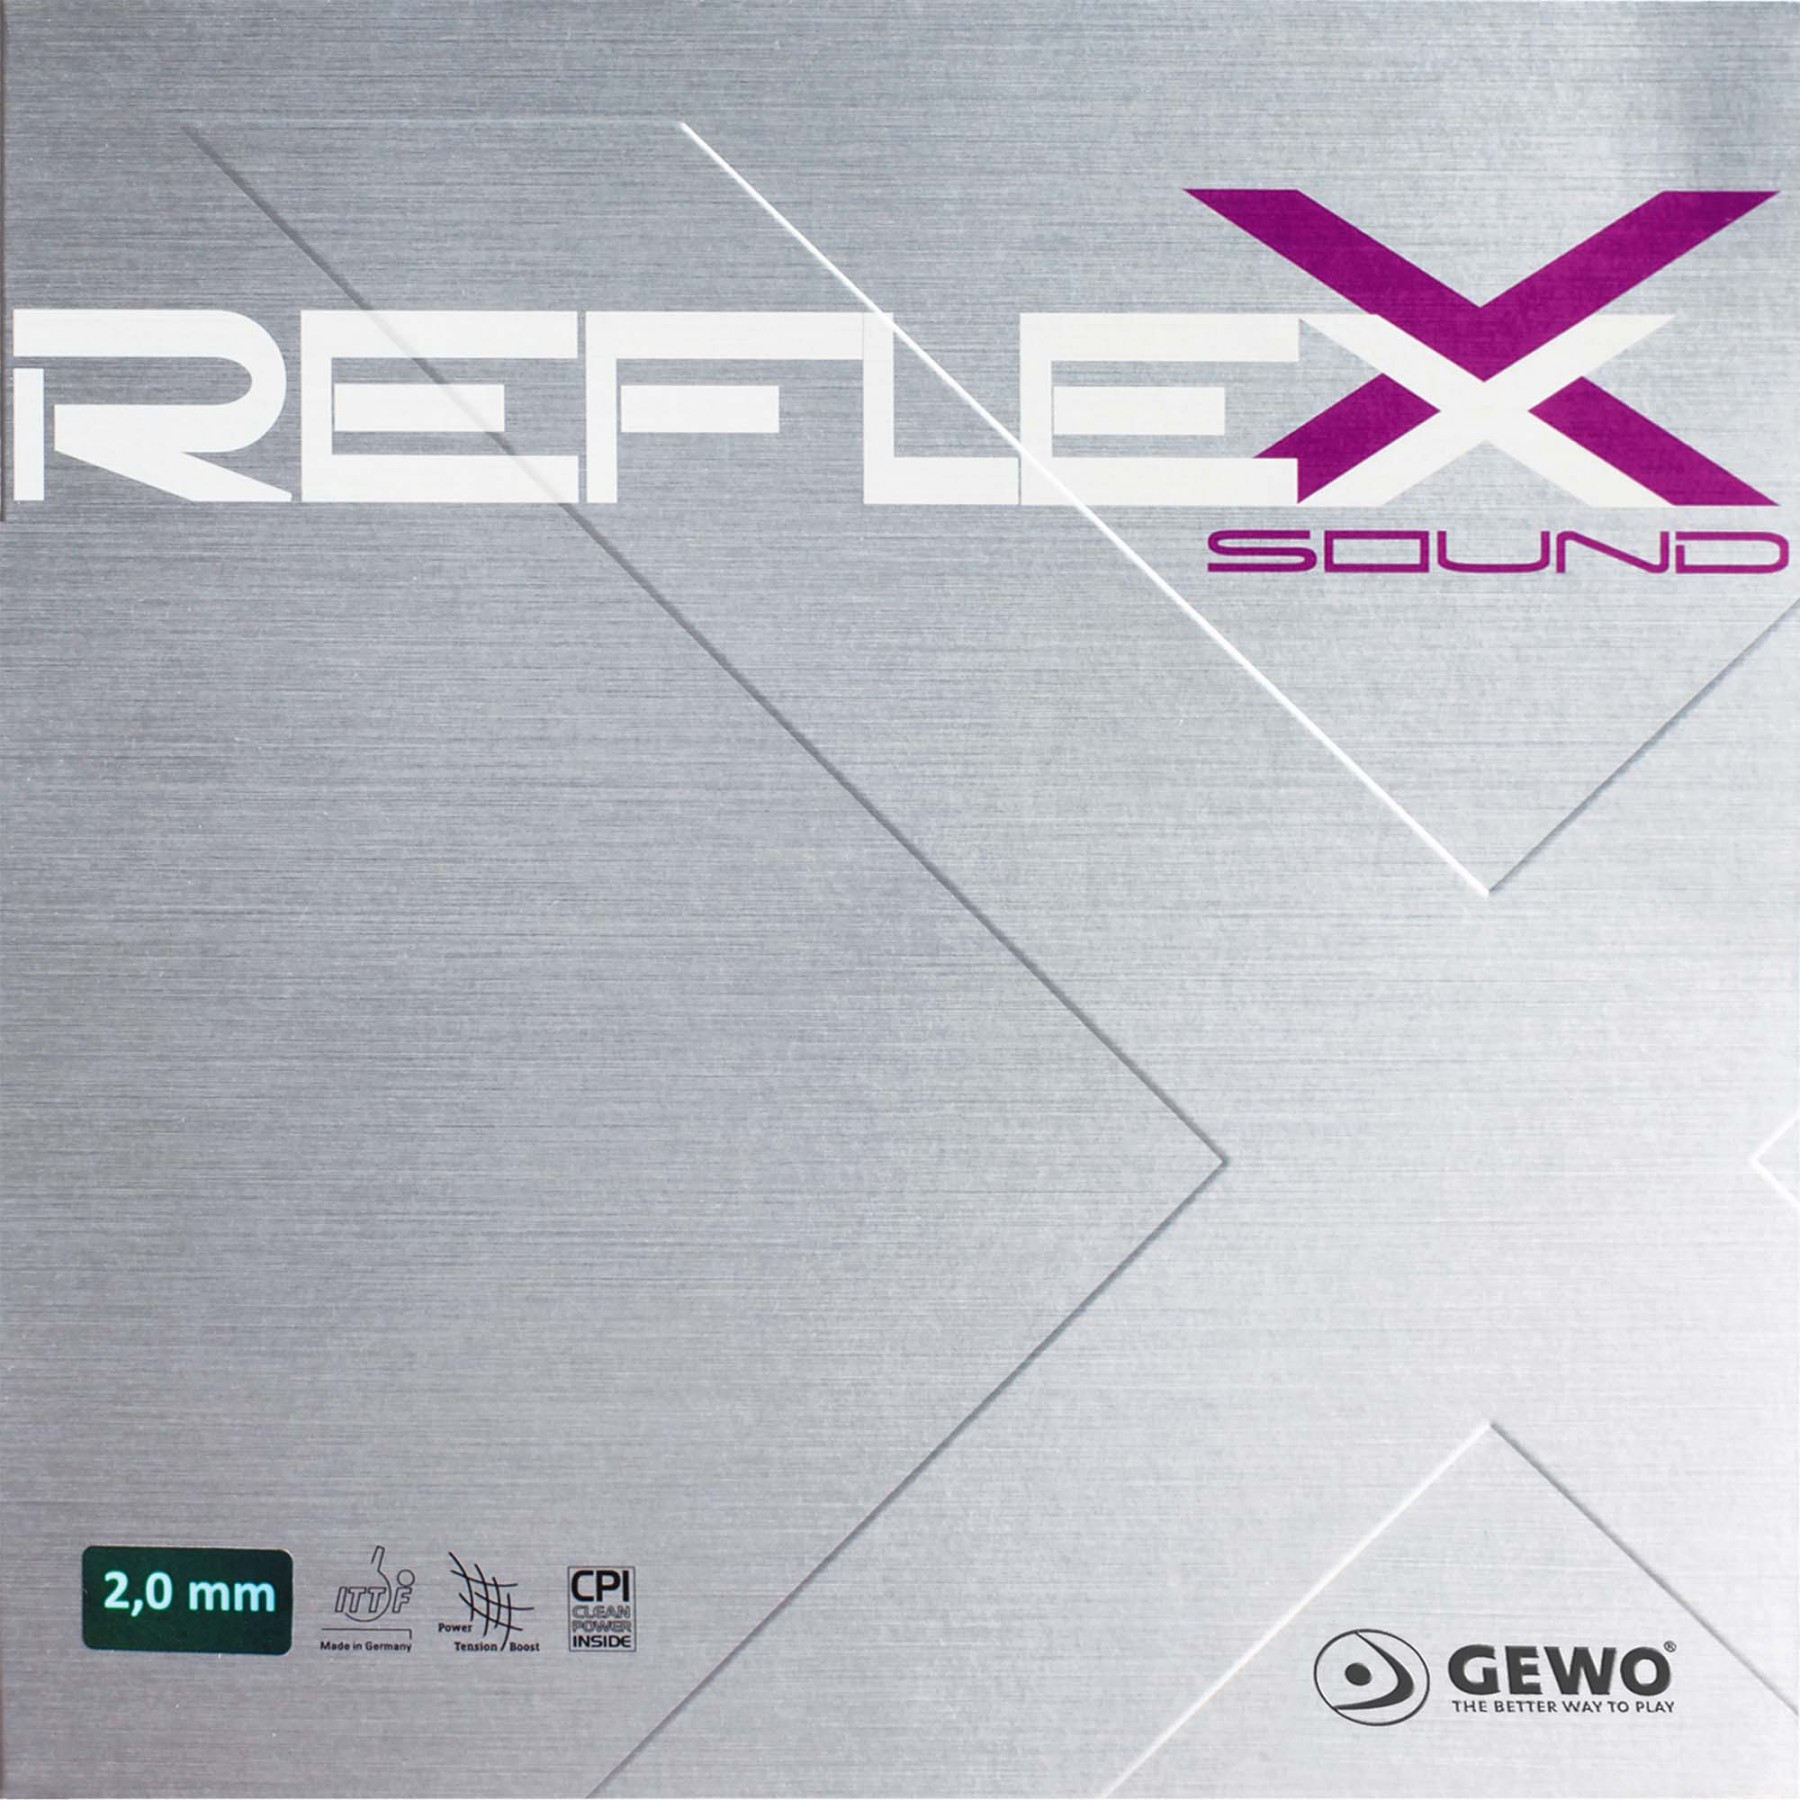 GEWO Reflexx Sound rot 2.0 mm